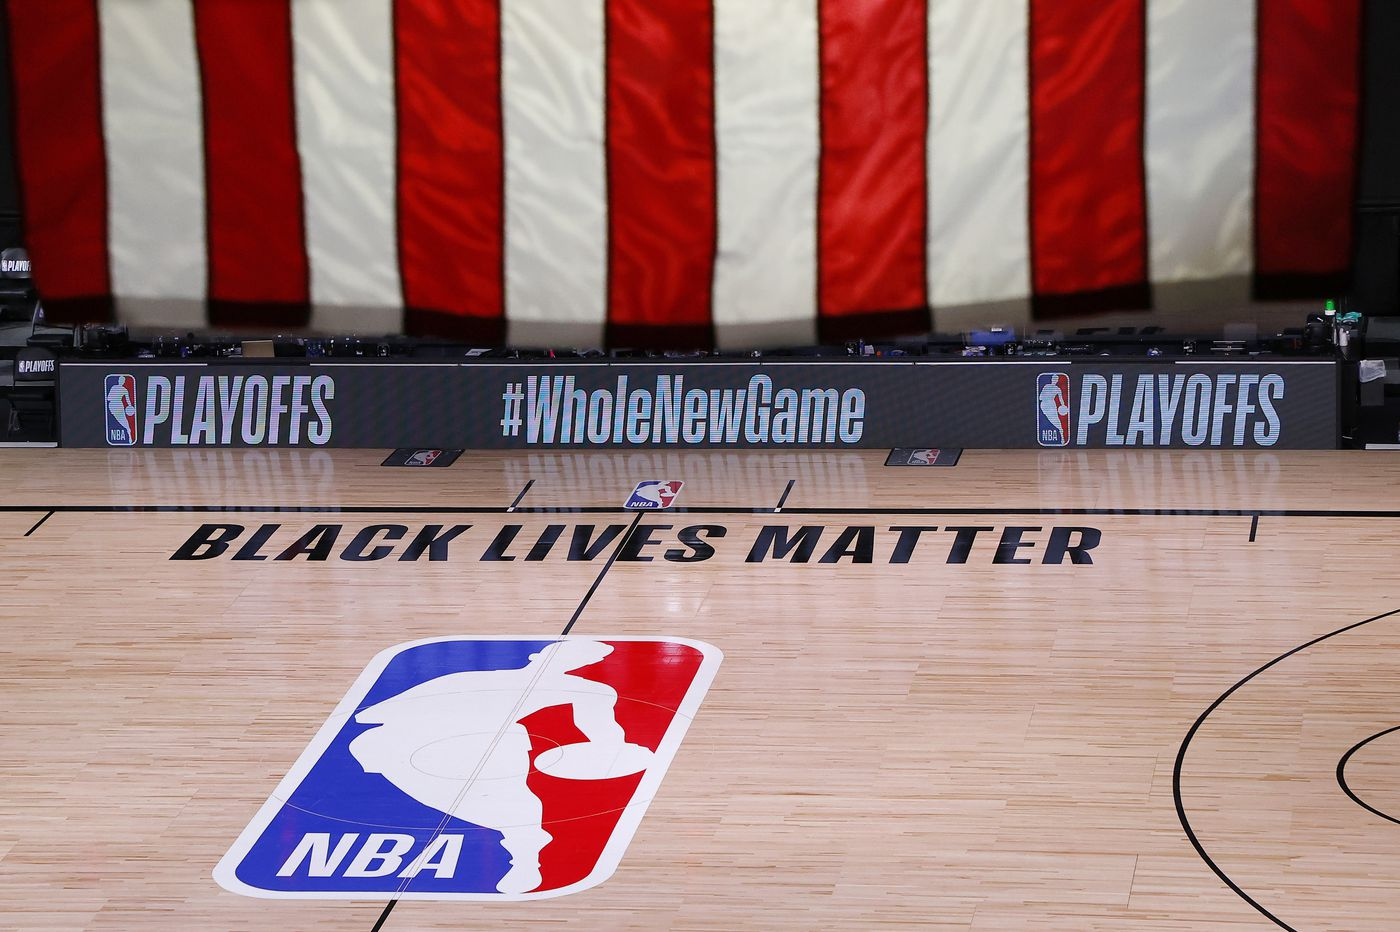 The NBA playoffs will resume as players look to use their platforms to fight racism